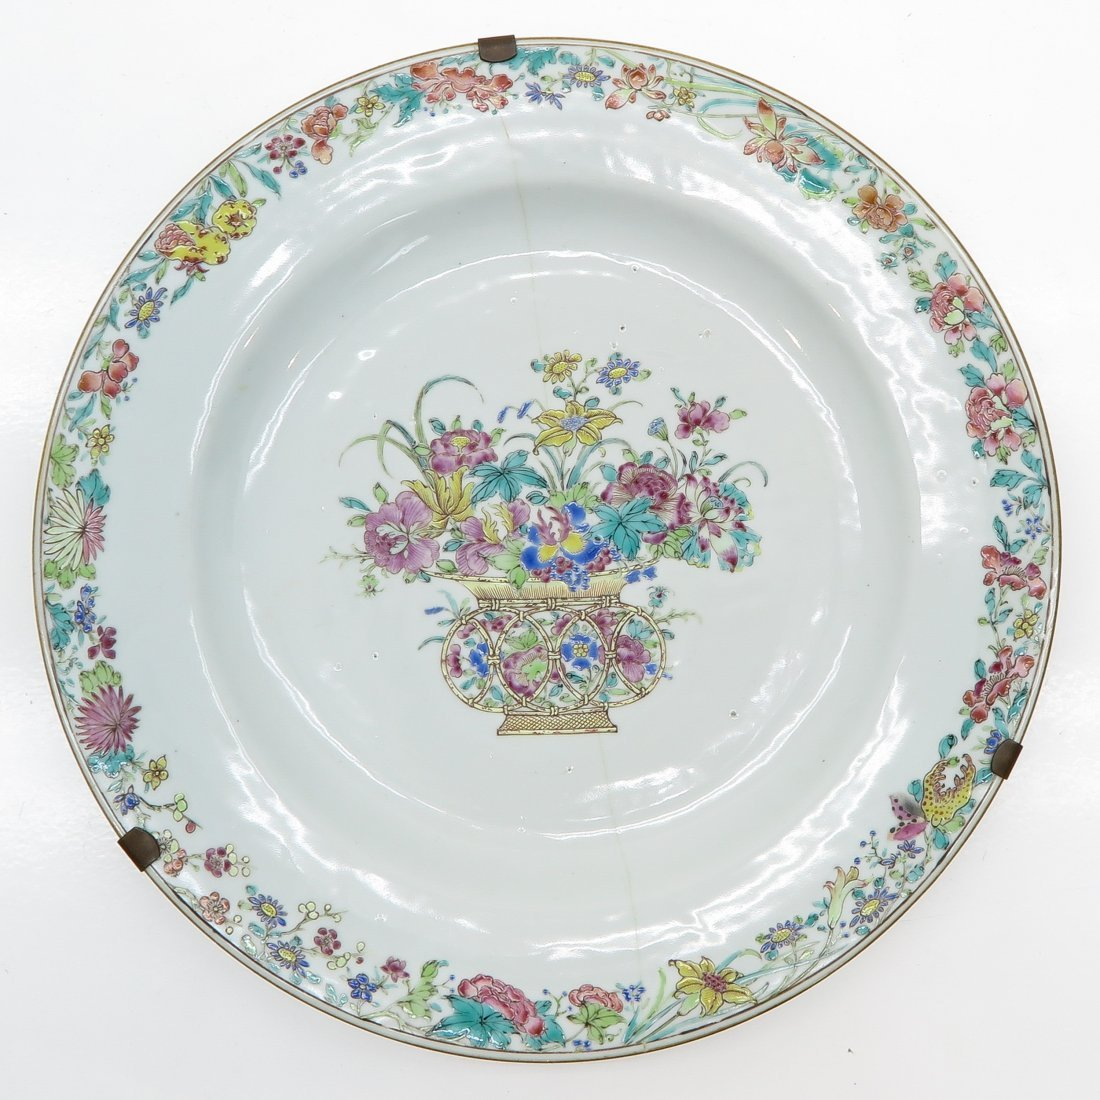 19th Century China Porcelain Plate